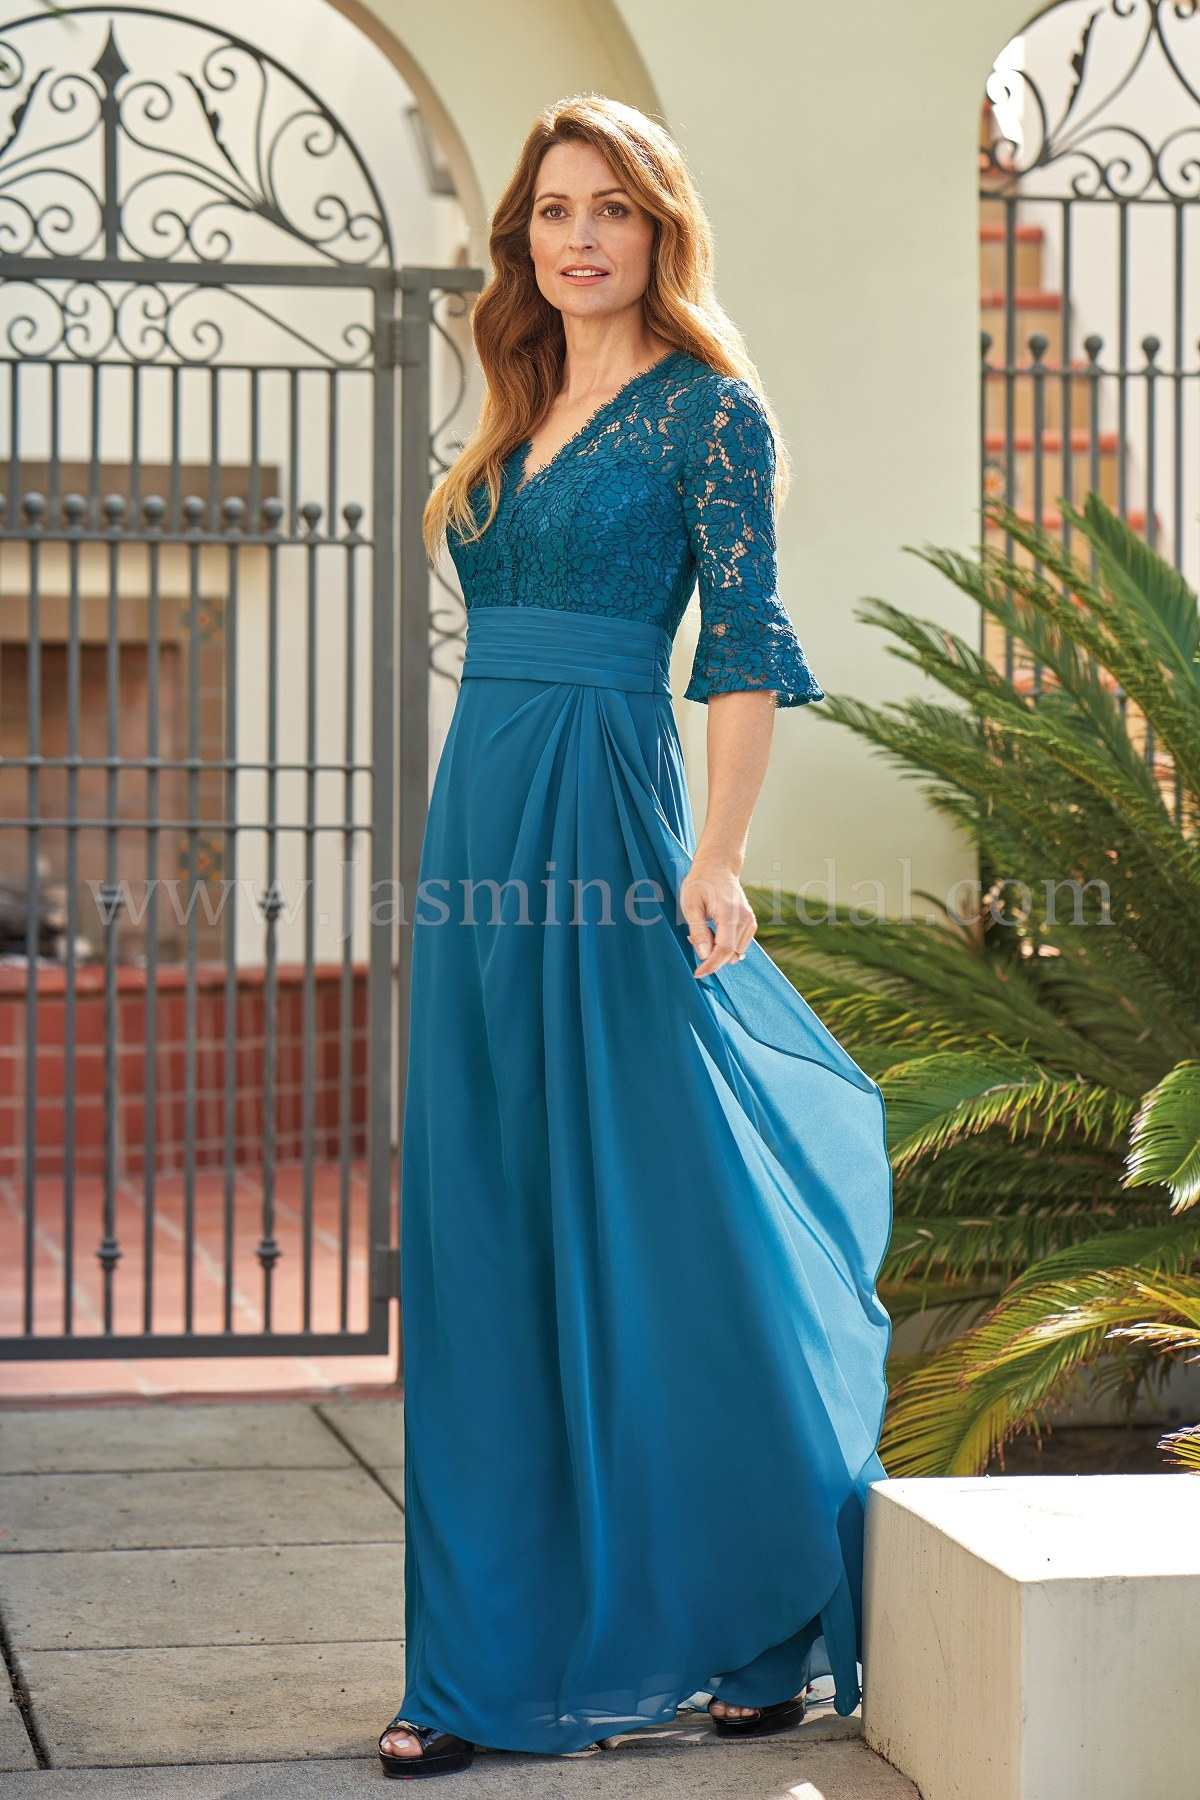 Enchanting Mother Of The Bride Dresses Ottawa Image Collection - All ...